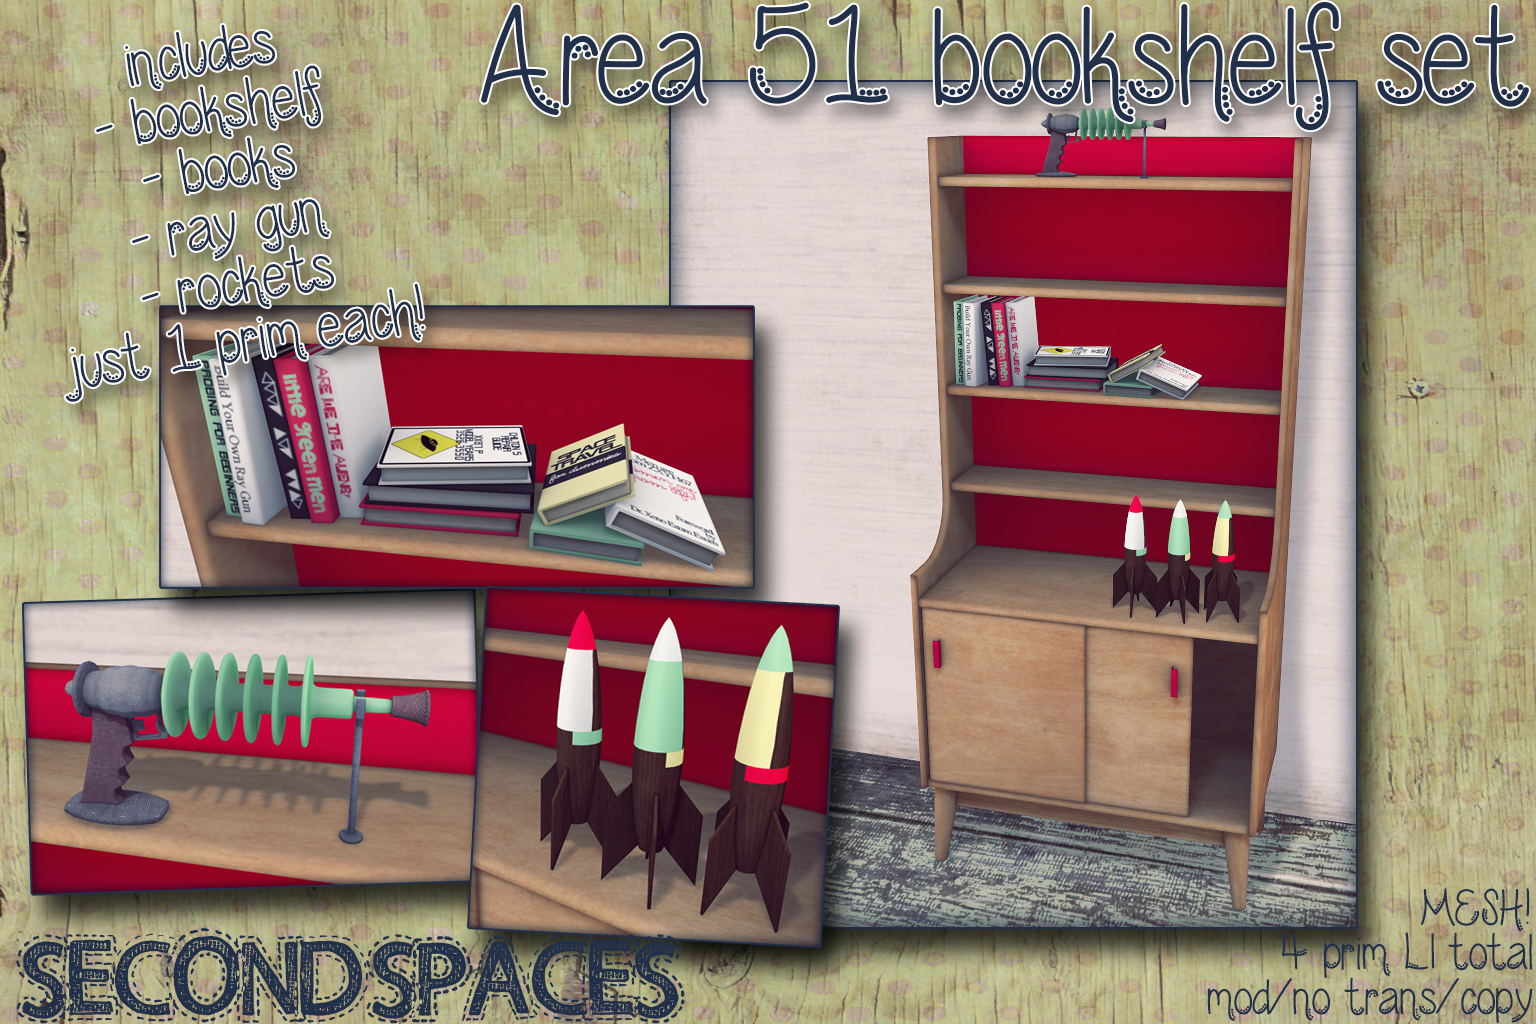 area 51_bookshelf set_vendor.jpg